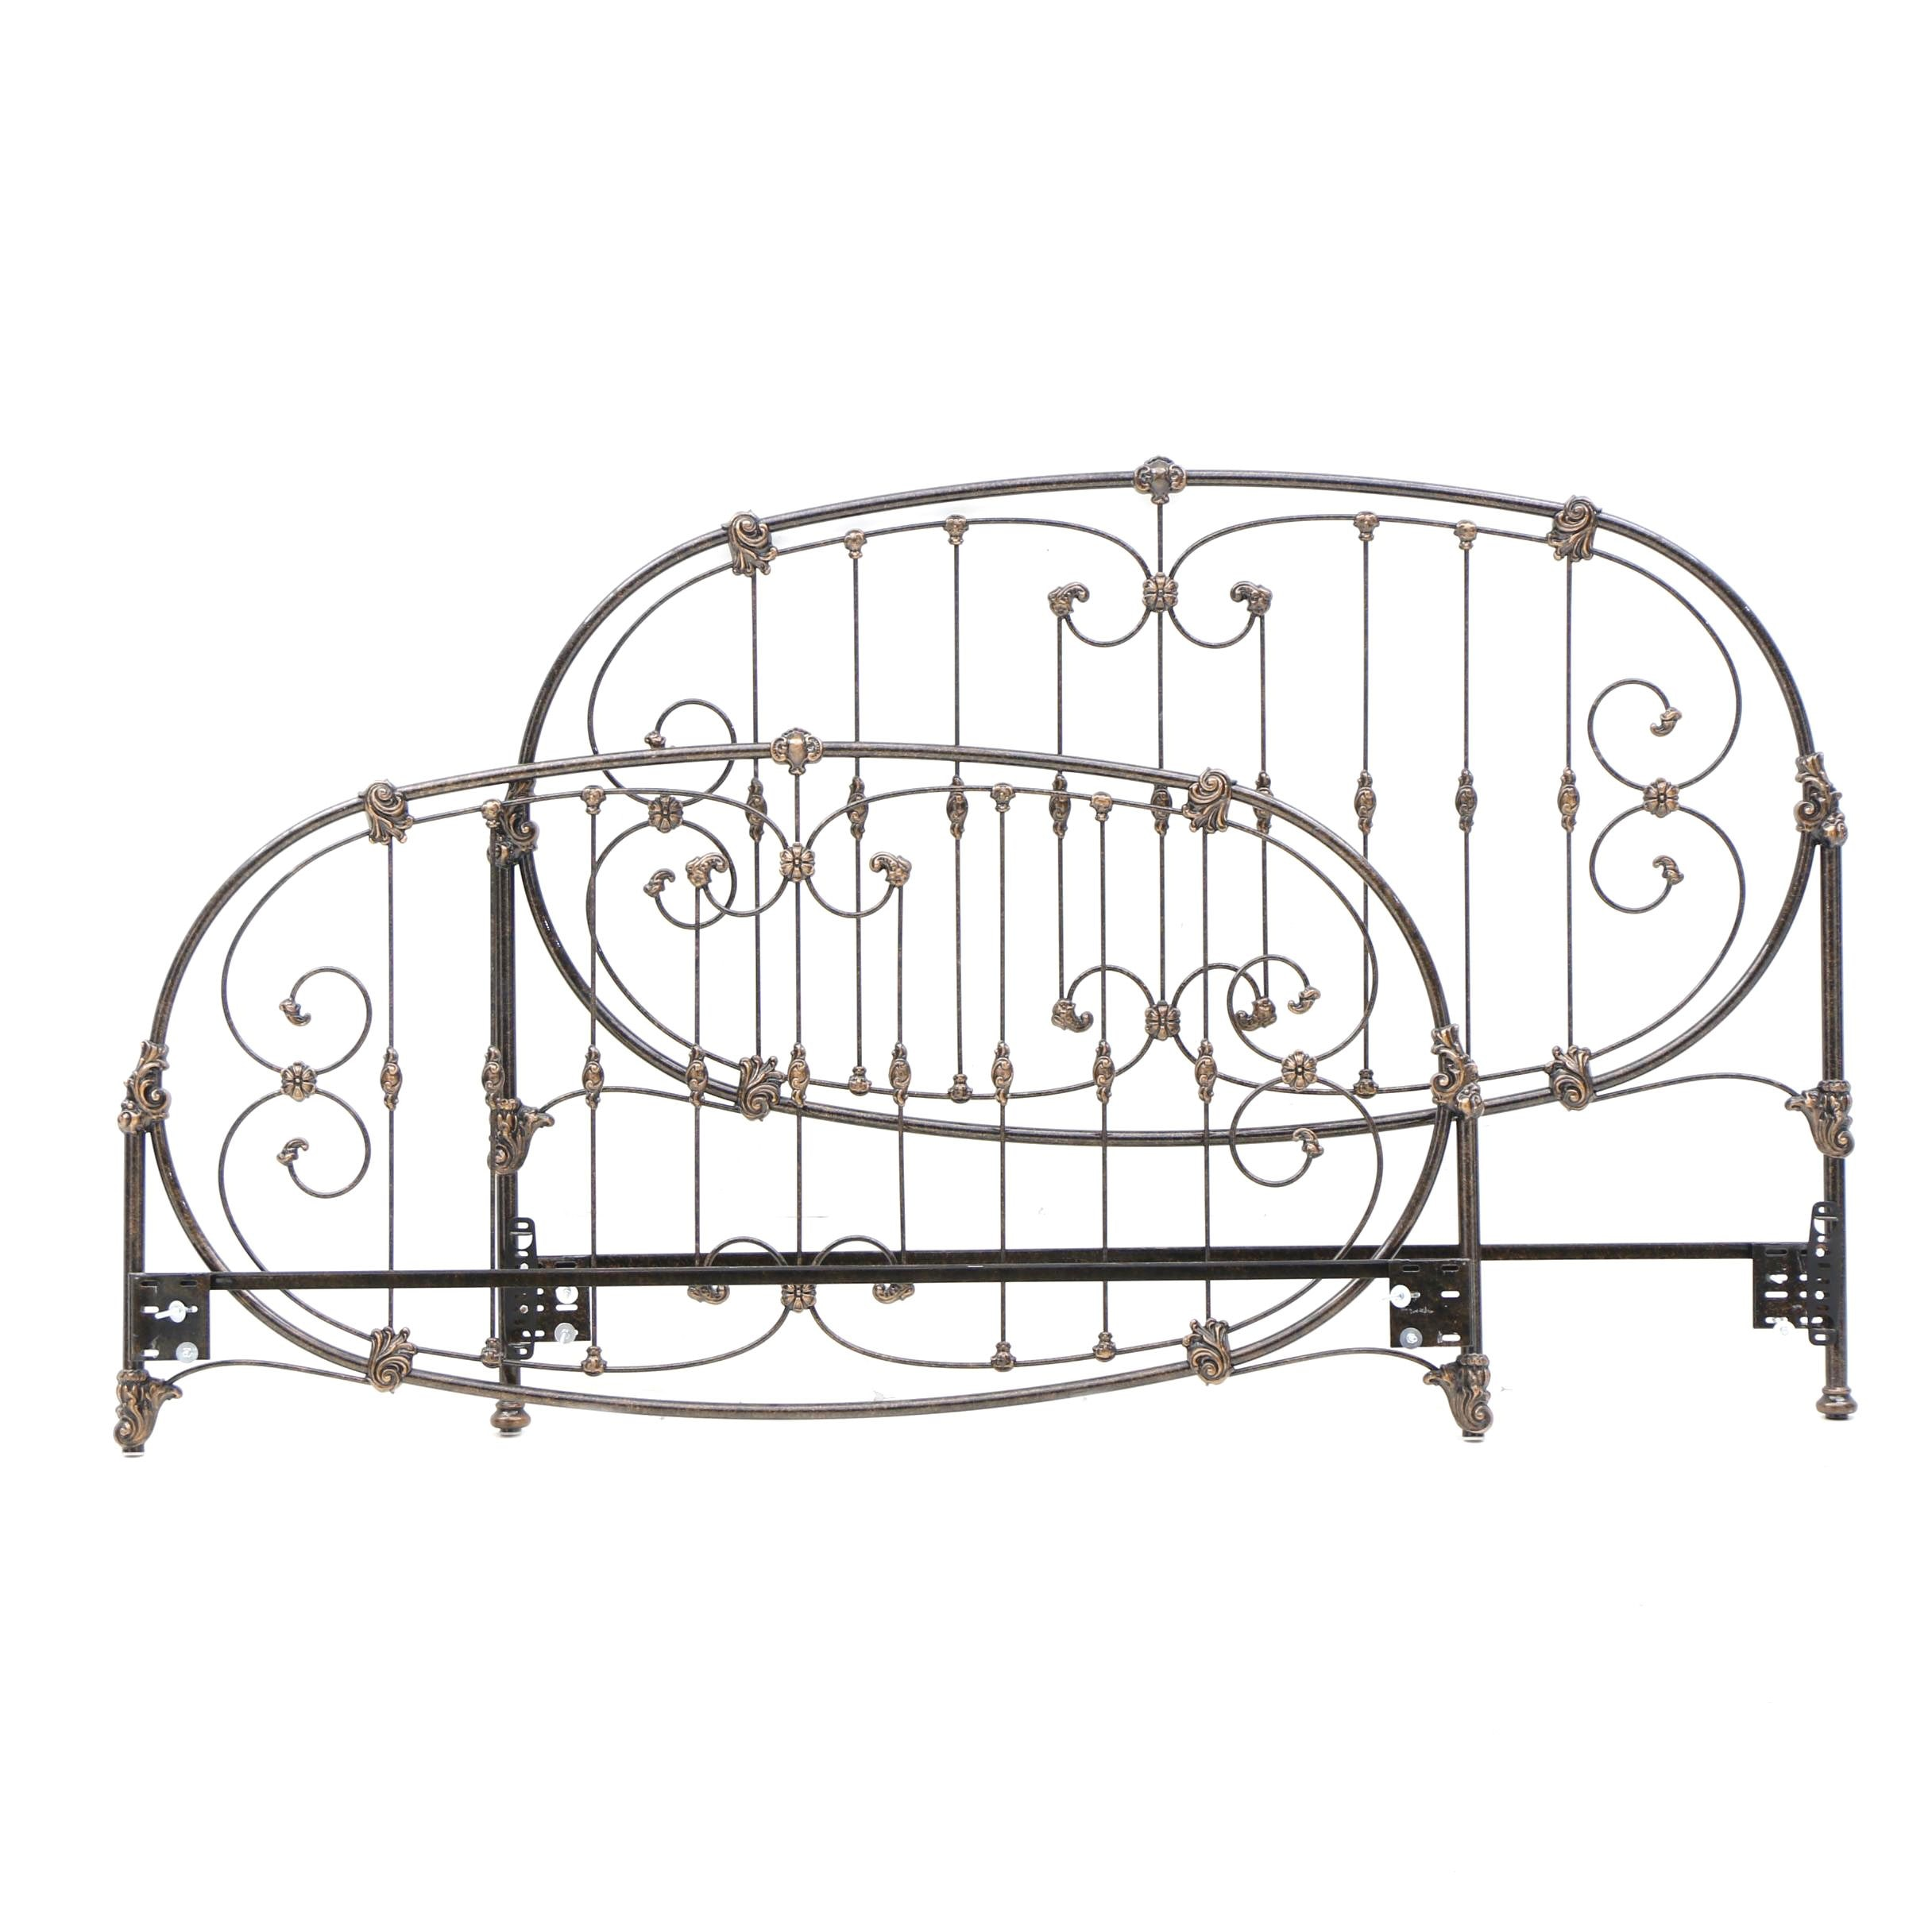 King Size Metal Headboard and Footboard, 20th Century